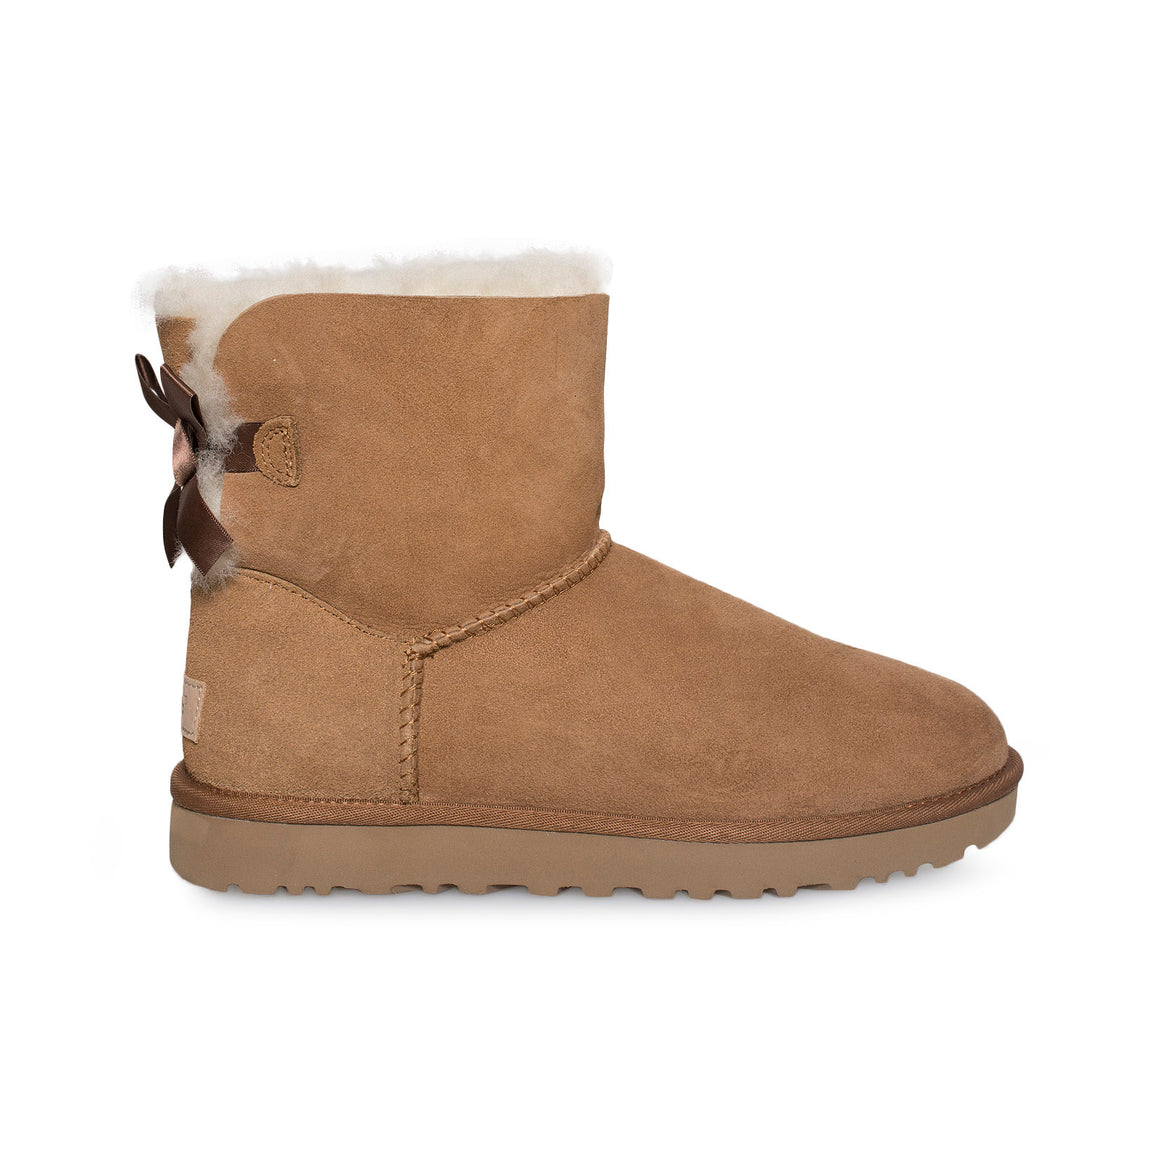 UGG Mini Bailey Bow II Chestnut Boots